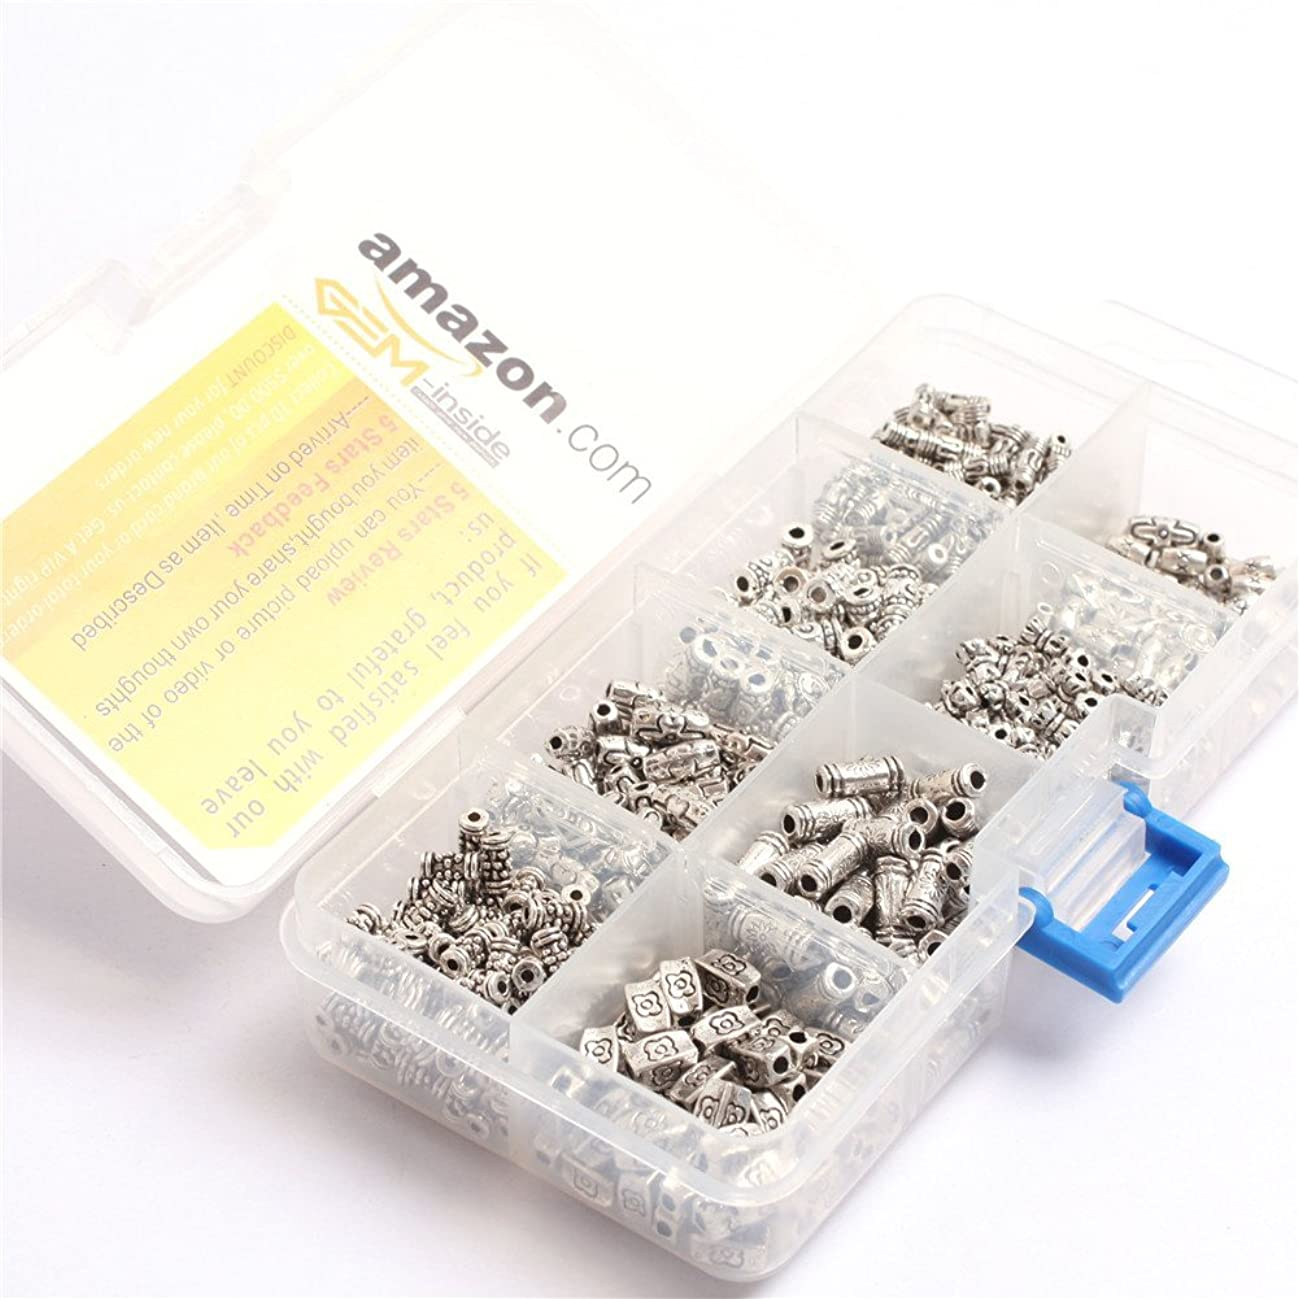 GEM-inside nickel free Small Tube Bali Style Antique Tibetan Silver Findings Jewelry Making DIY Spacer Beads Charms Jewelry Findings Jewelry Making DIY Connectors 600Pcs With Box(Mix)